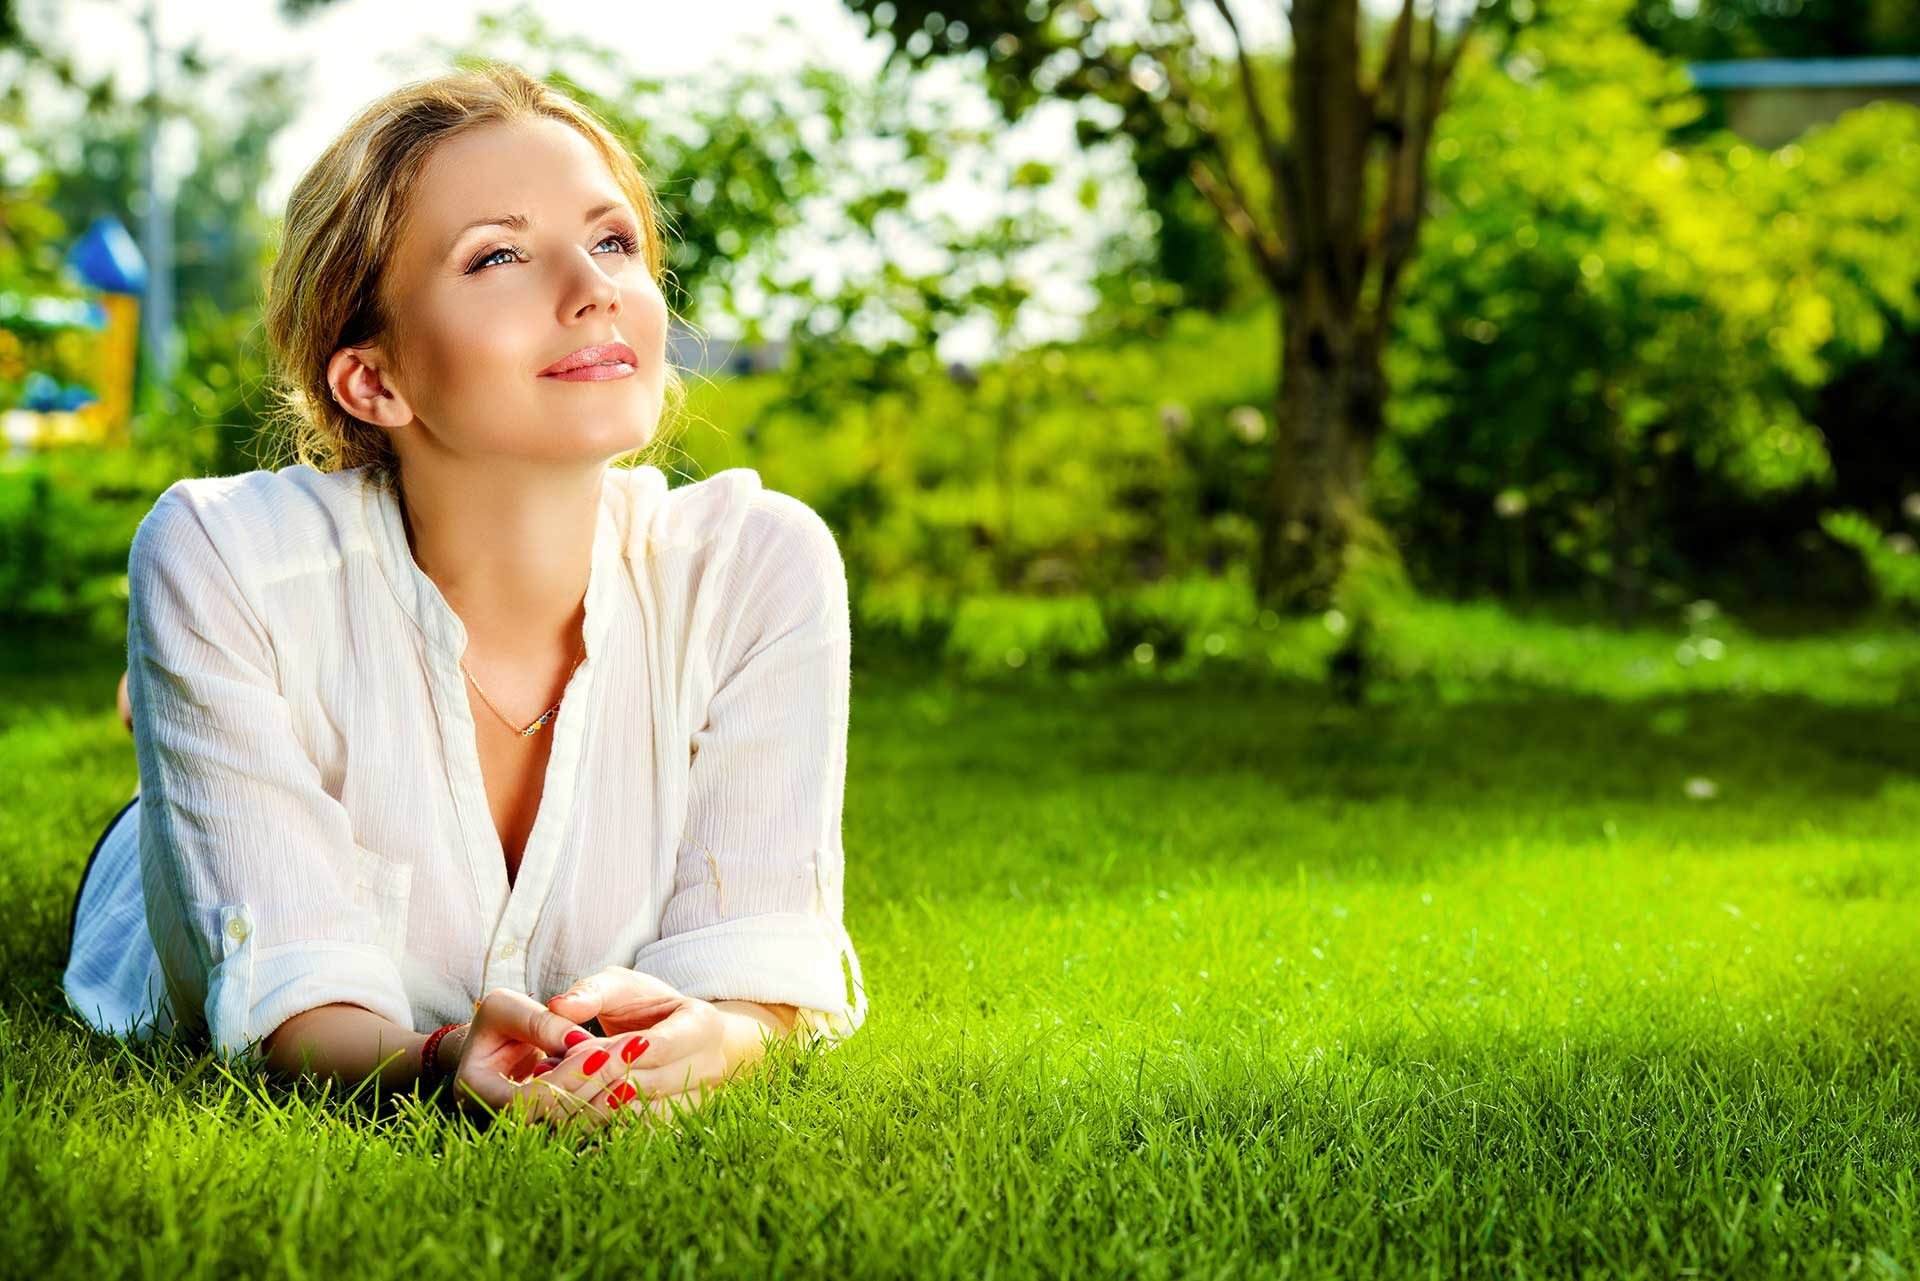 blonde holistic dental patient enjoying laying in grass